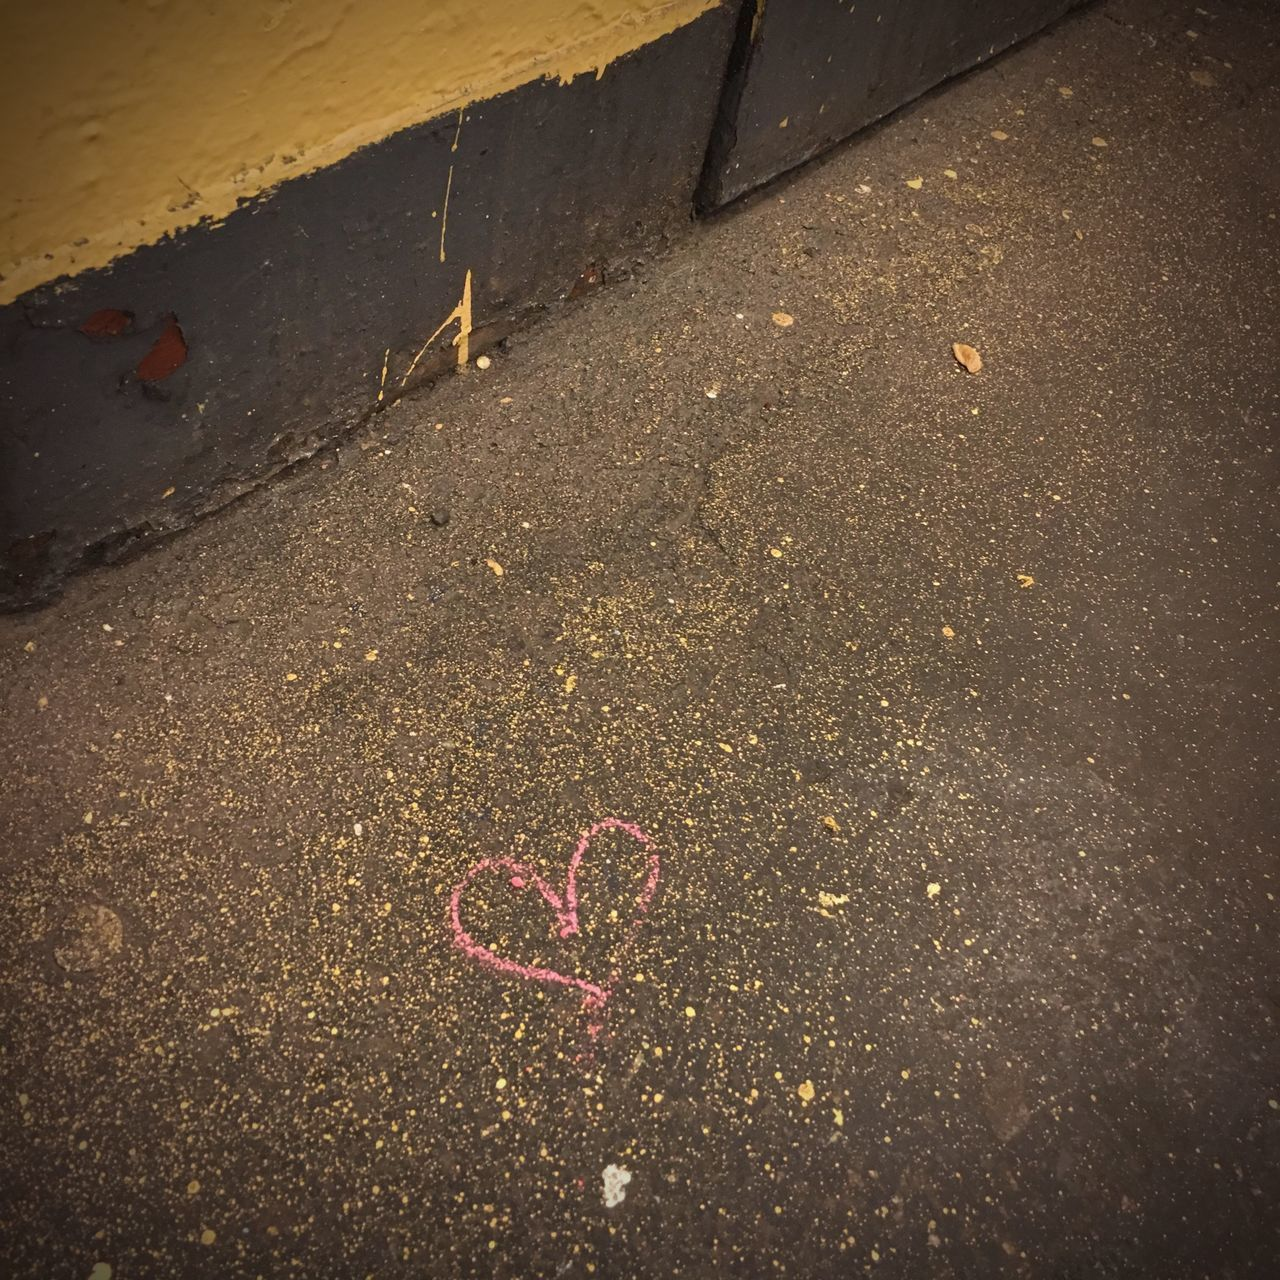 heart shape, love, outdoors, day, no people, nature, close-up